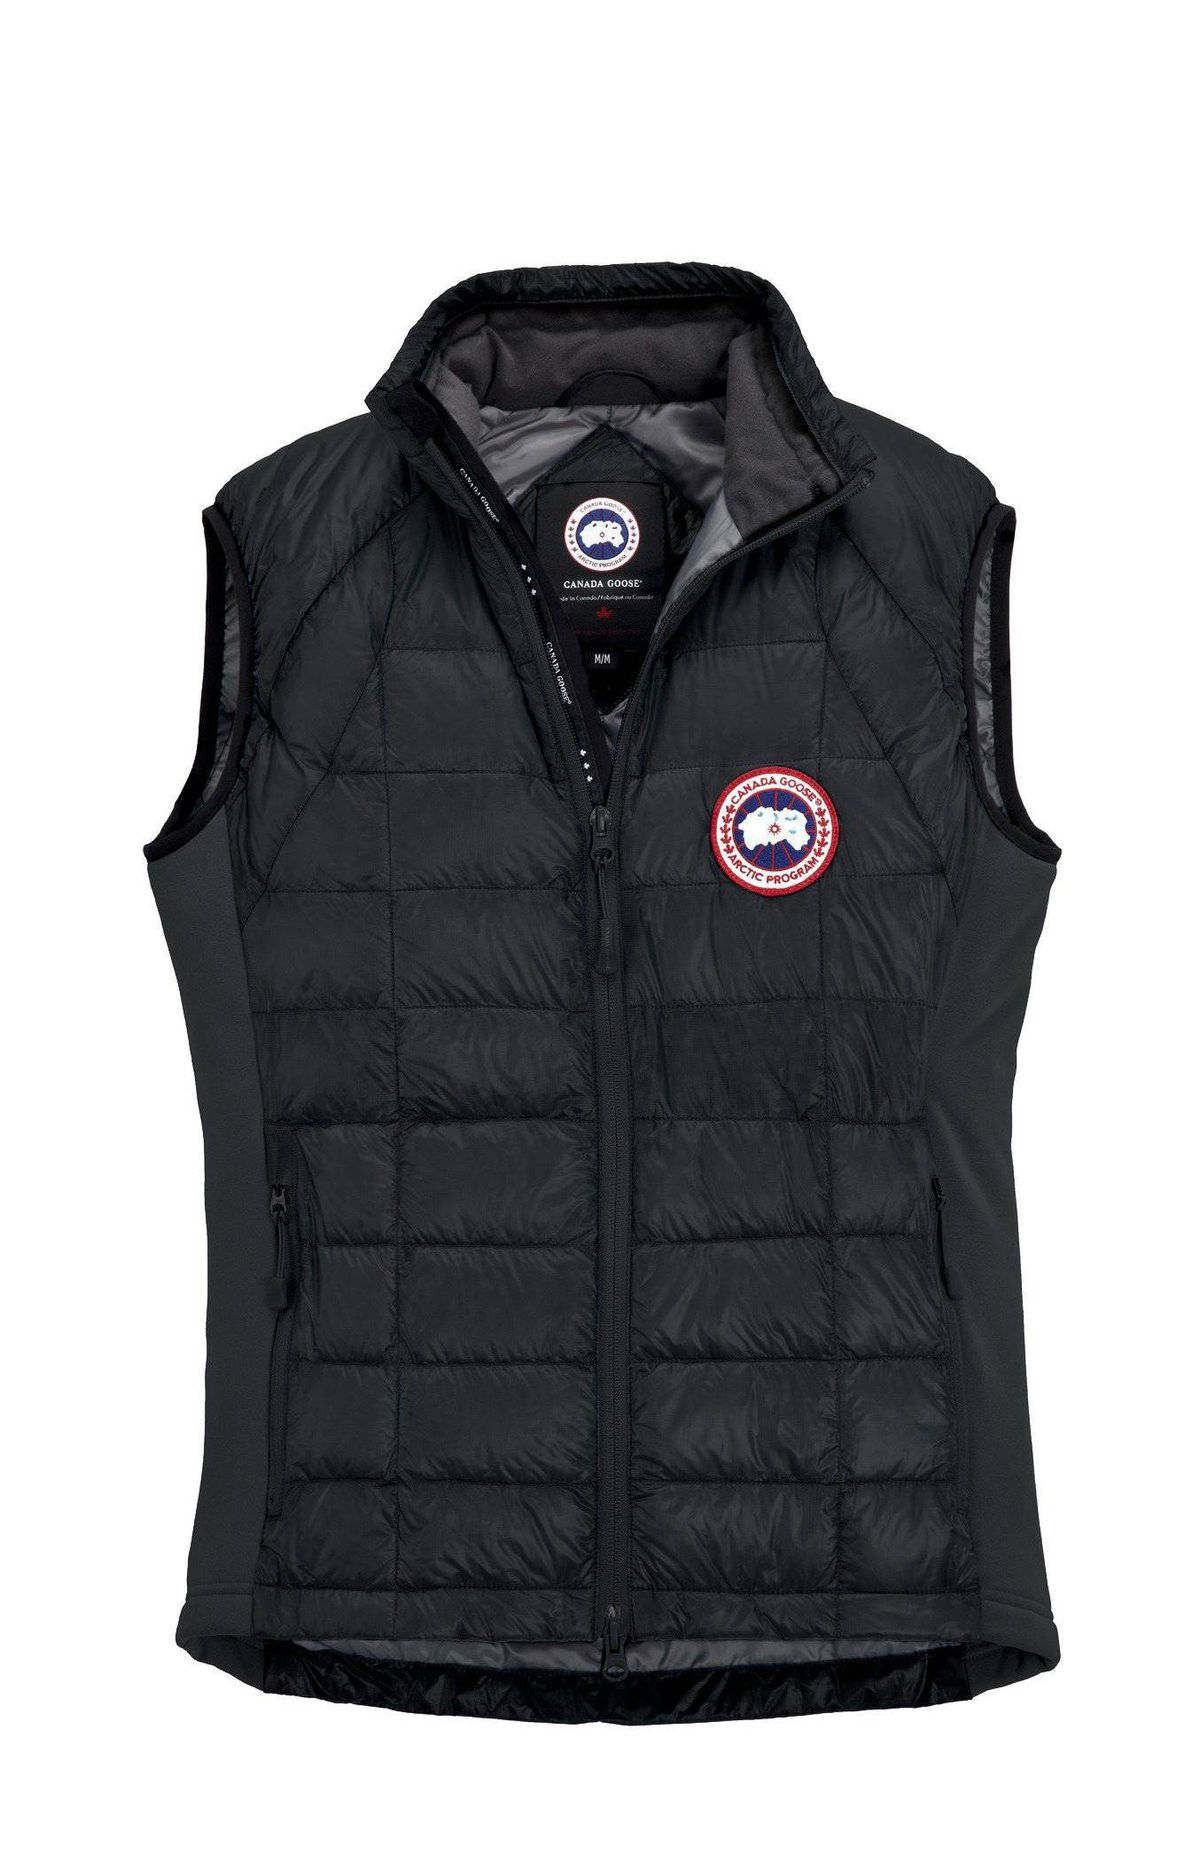 Get cozy Add an extra layer of warmth with Canada Goose's Hybridge Lite Vest. The fitted quilted vest is insulated with 800-fill-power Hutterite white goose down and has extra stretch in the armholes and sides to ensure comfortable manoeuvring. It also tucks into its own exterior pocket, making it easy to pack and store. $350; canada-goose.com